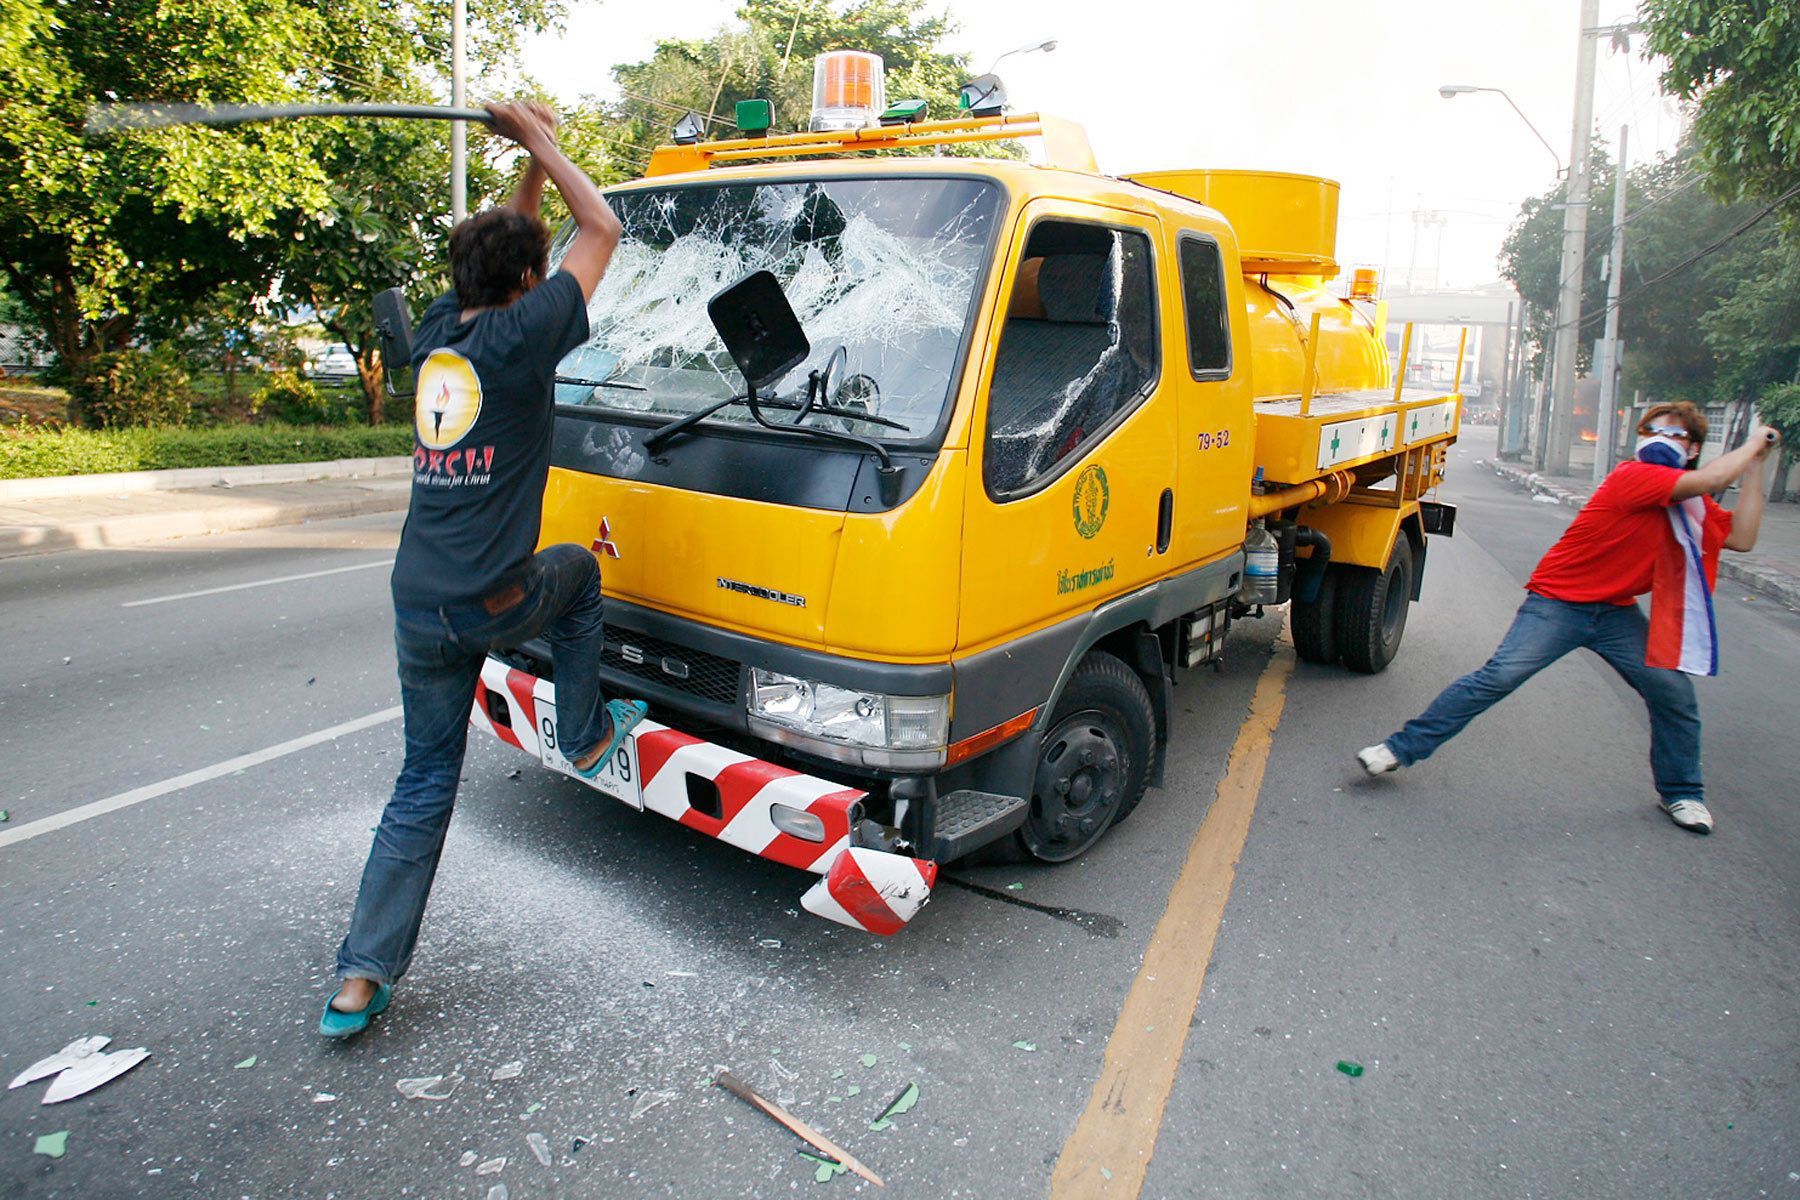 Members of the anti-government United Front for Democracy against Dictatorship (UDD) smash a firefighter truck sent after a bus was torched.